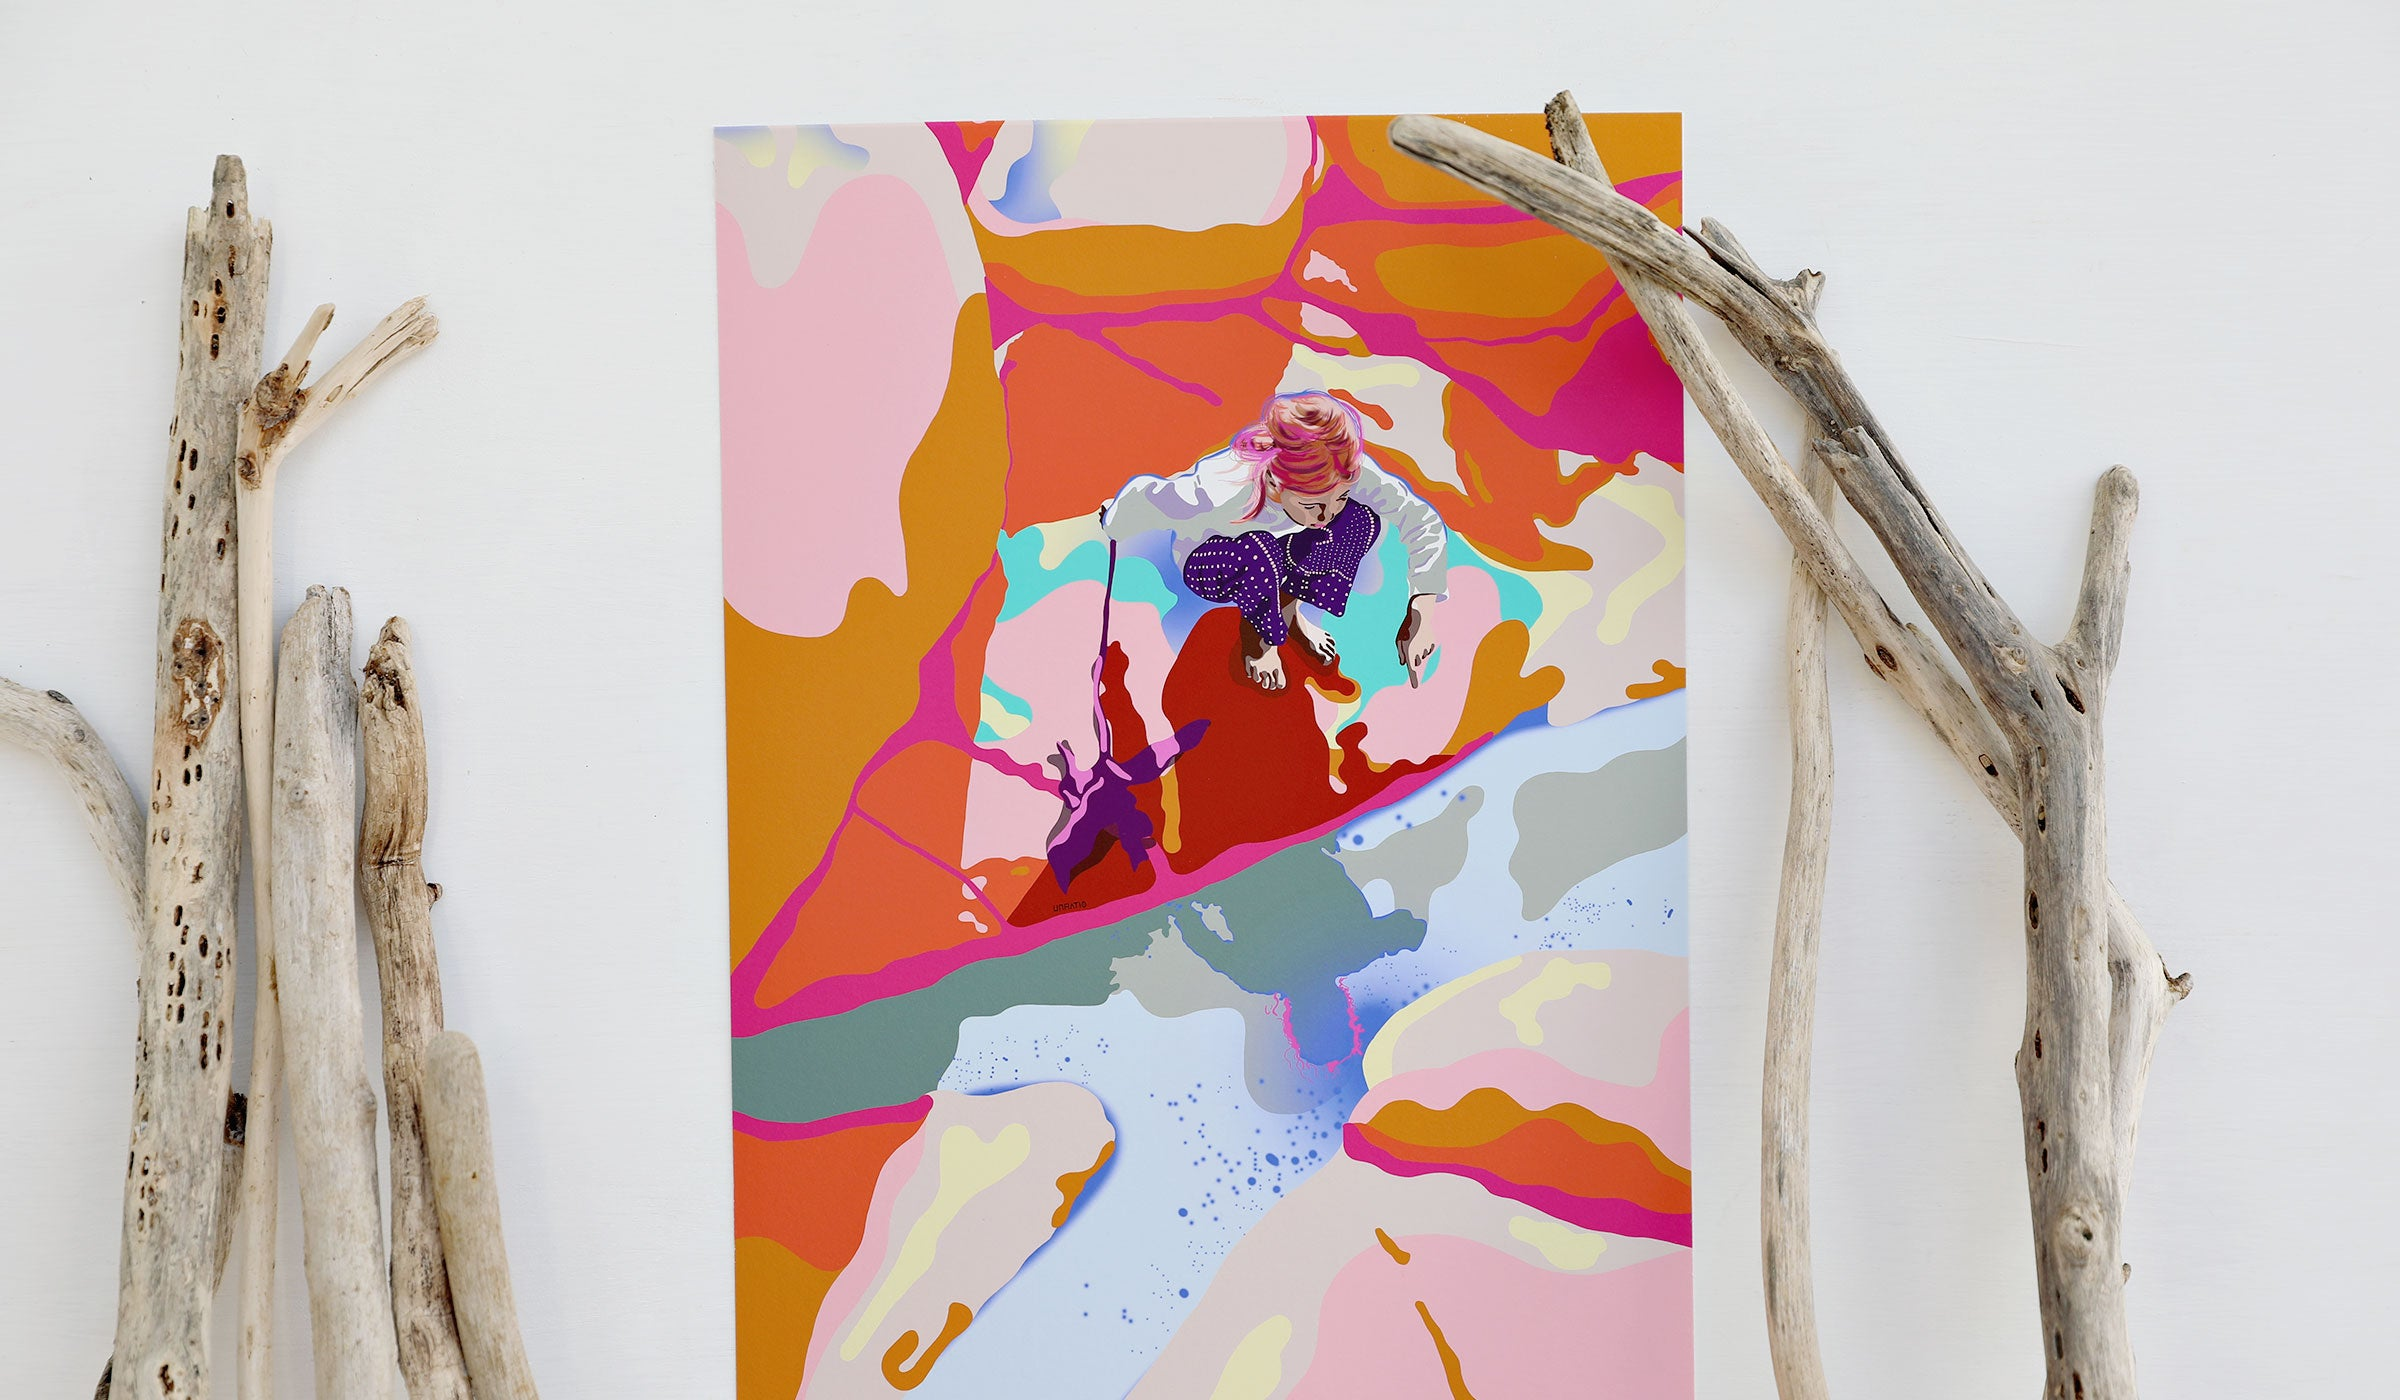 Bright colourful abstract digital illustration of a girl playing with a puddle of water